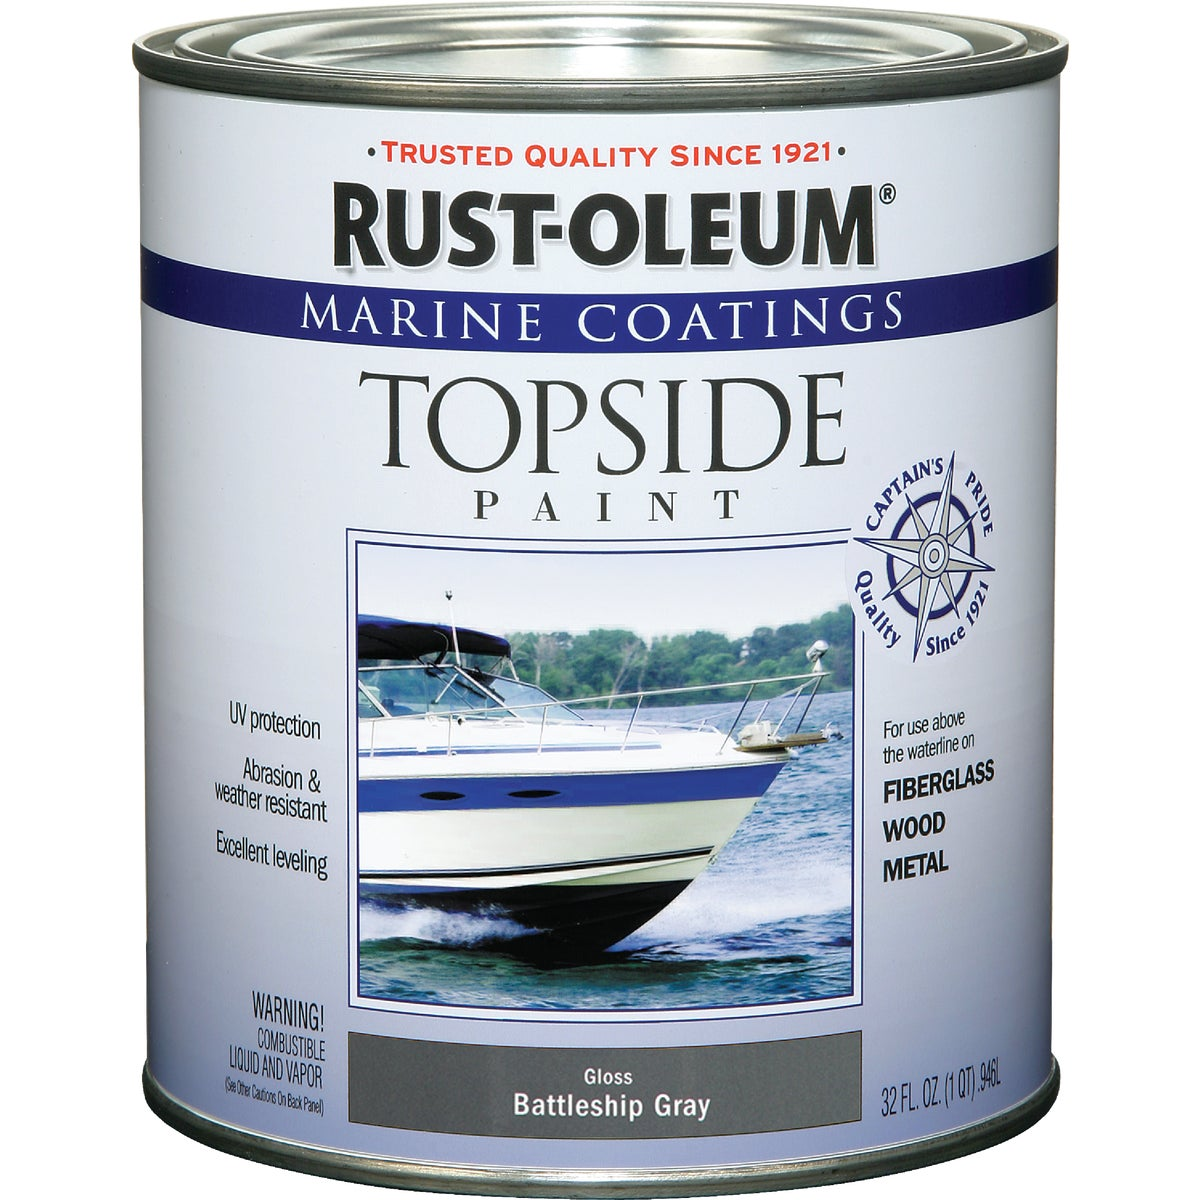 BAT GRY MARINE TOP PAINT - 207005 by Rustoleum